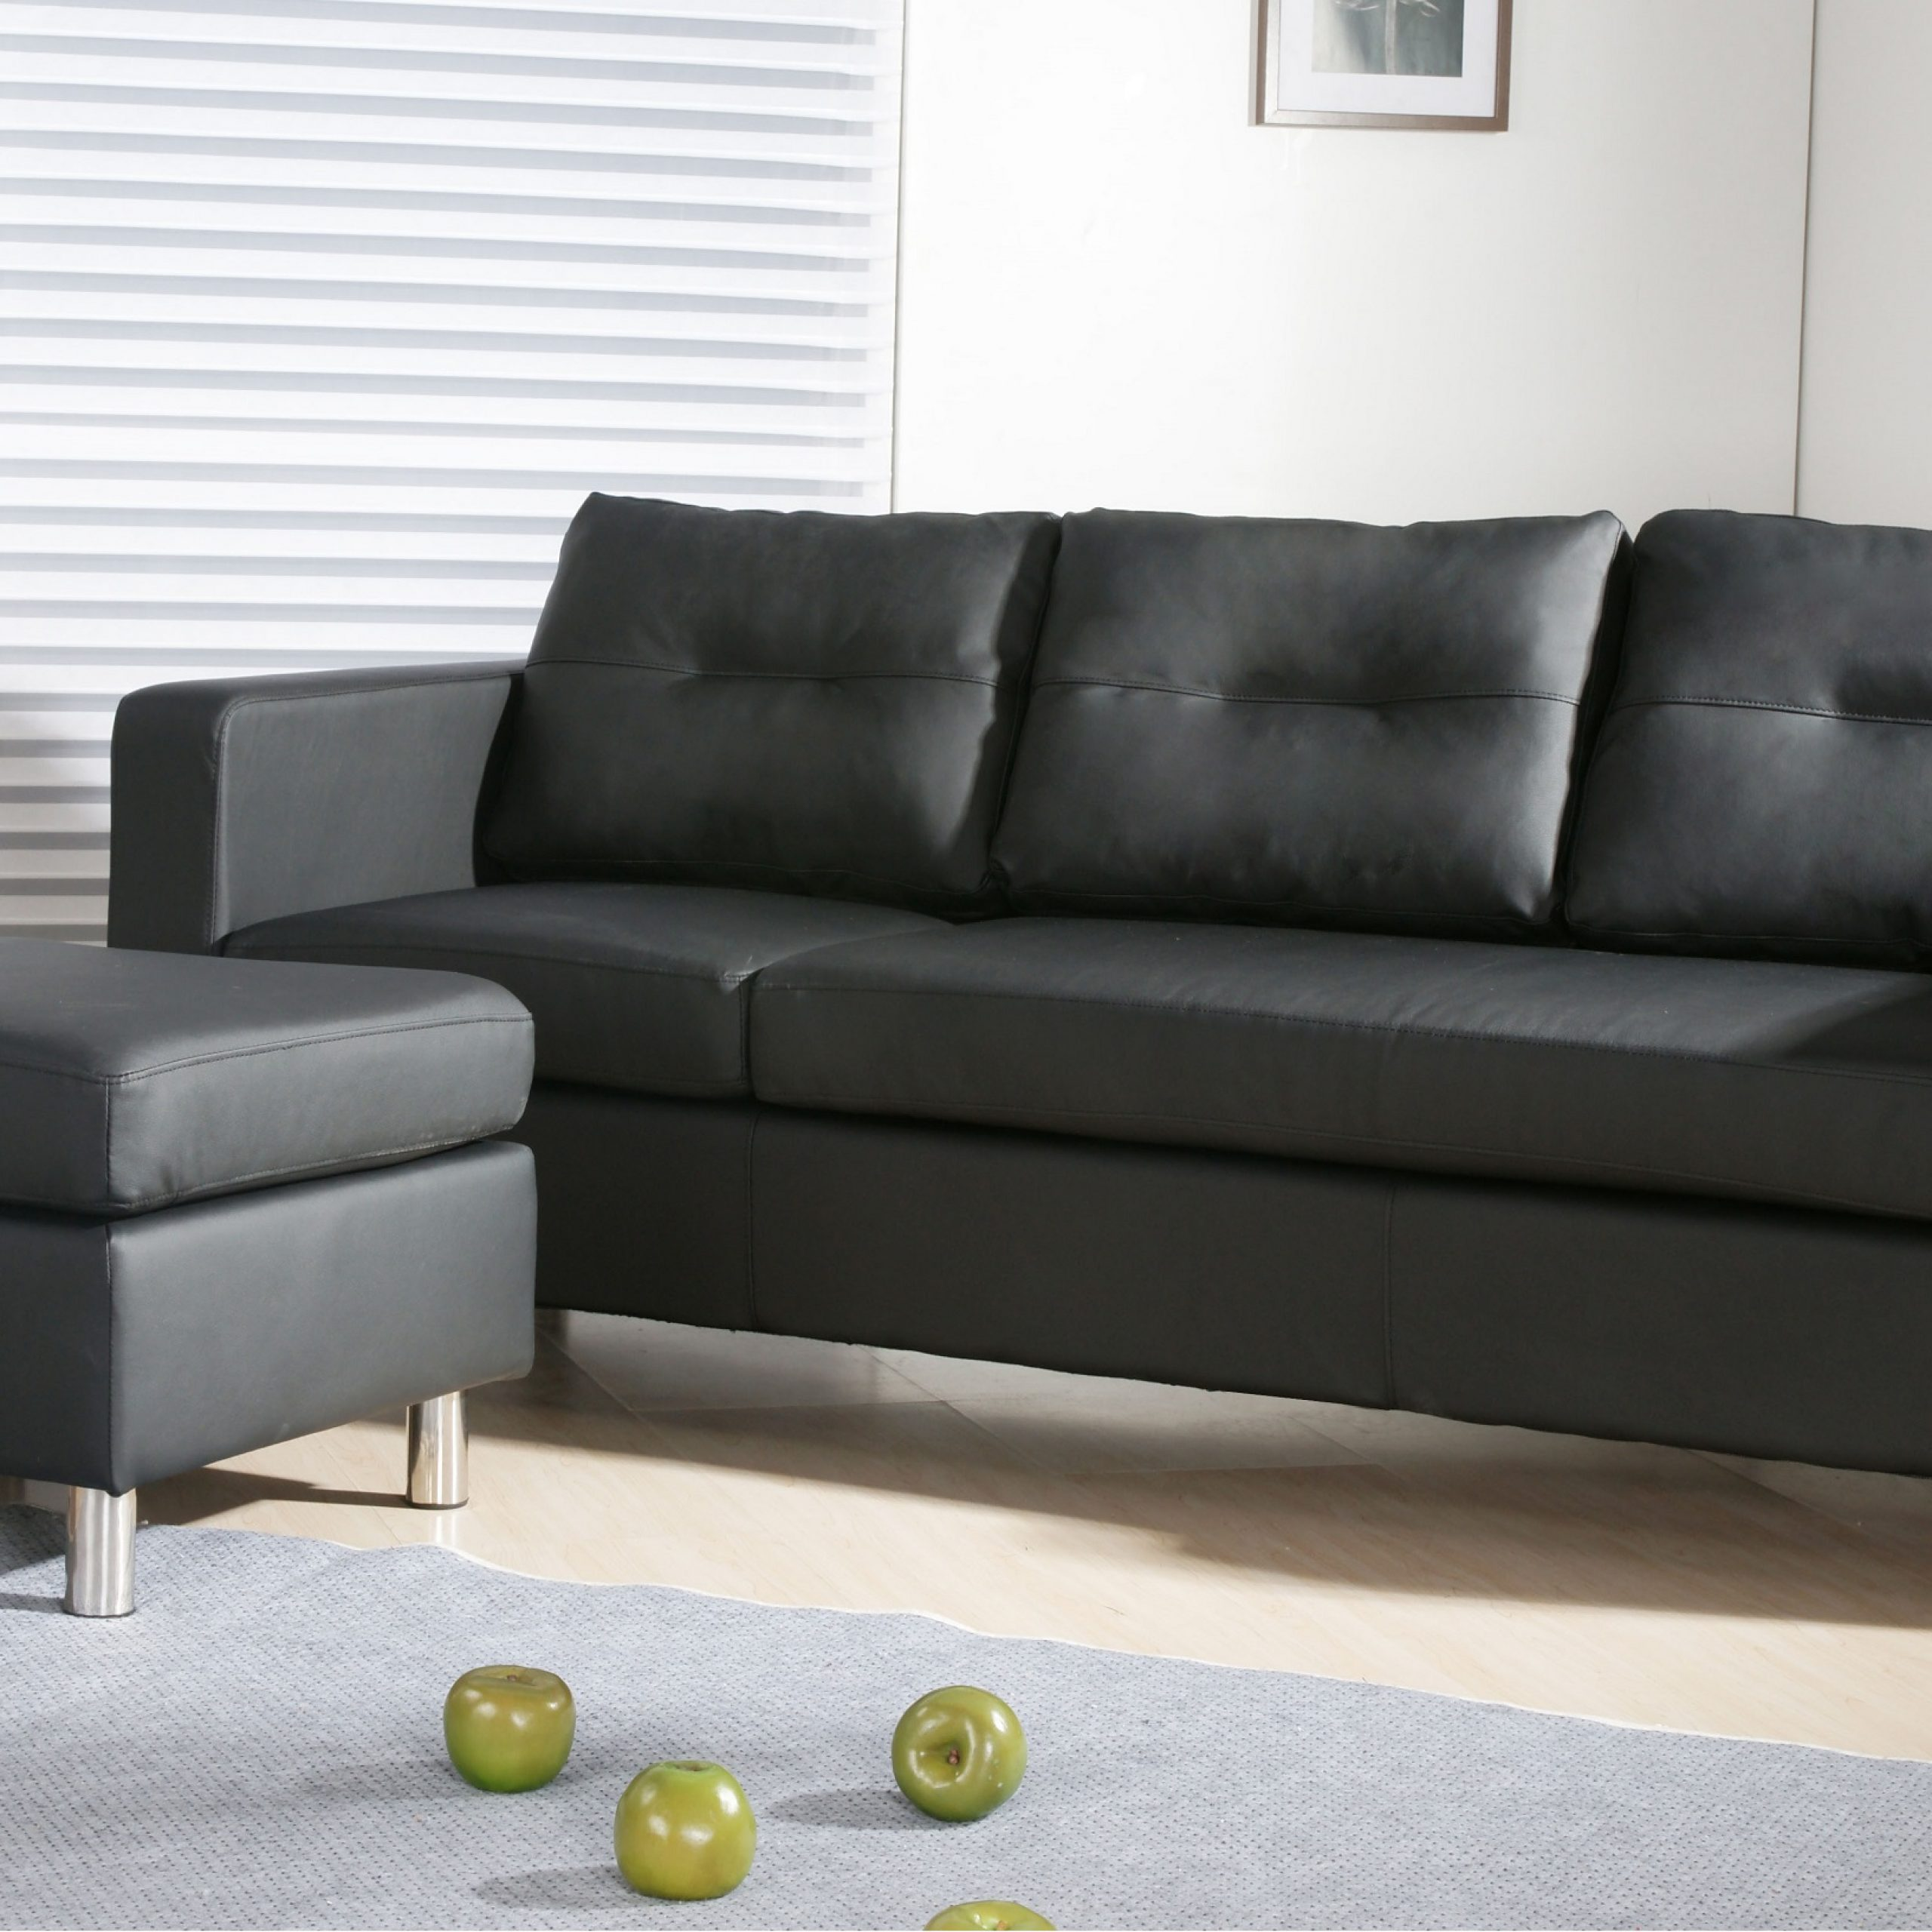 Caius Modern Faux Leather Configurable Left And Right Throughout Wynne Contemporary Sectional Sofas Black (View 1 of 15)